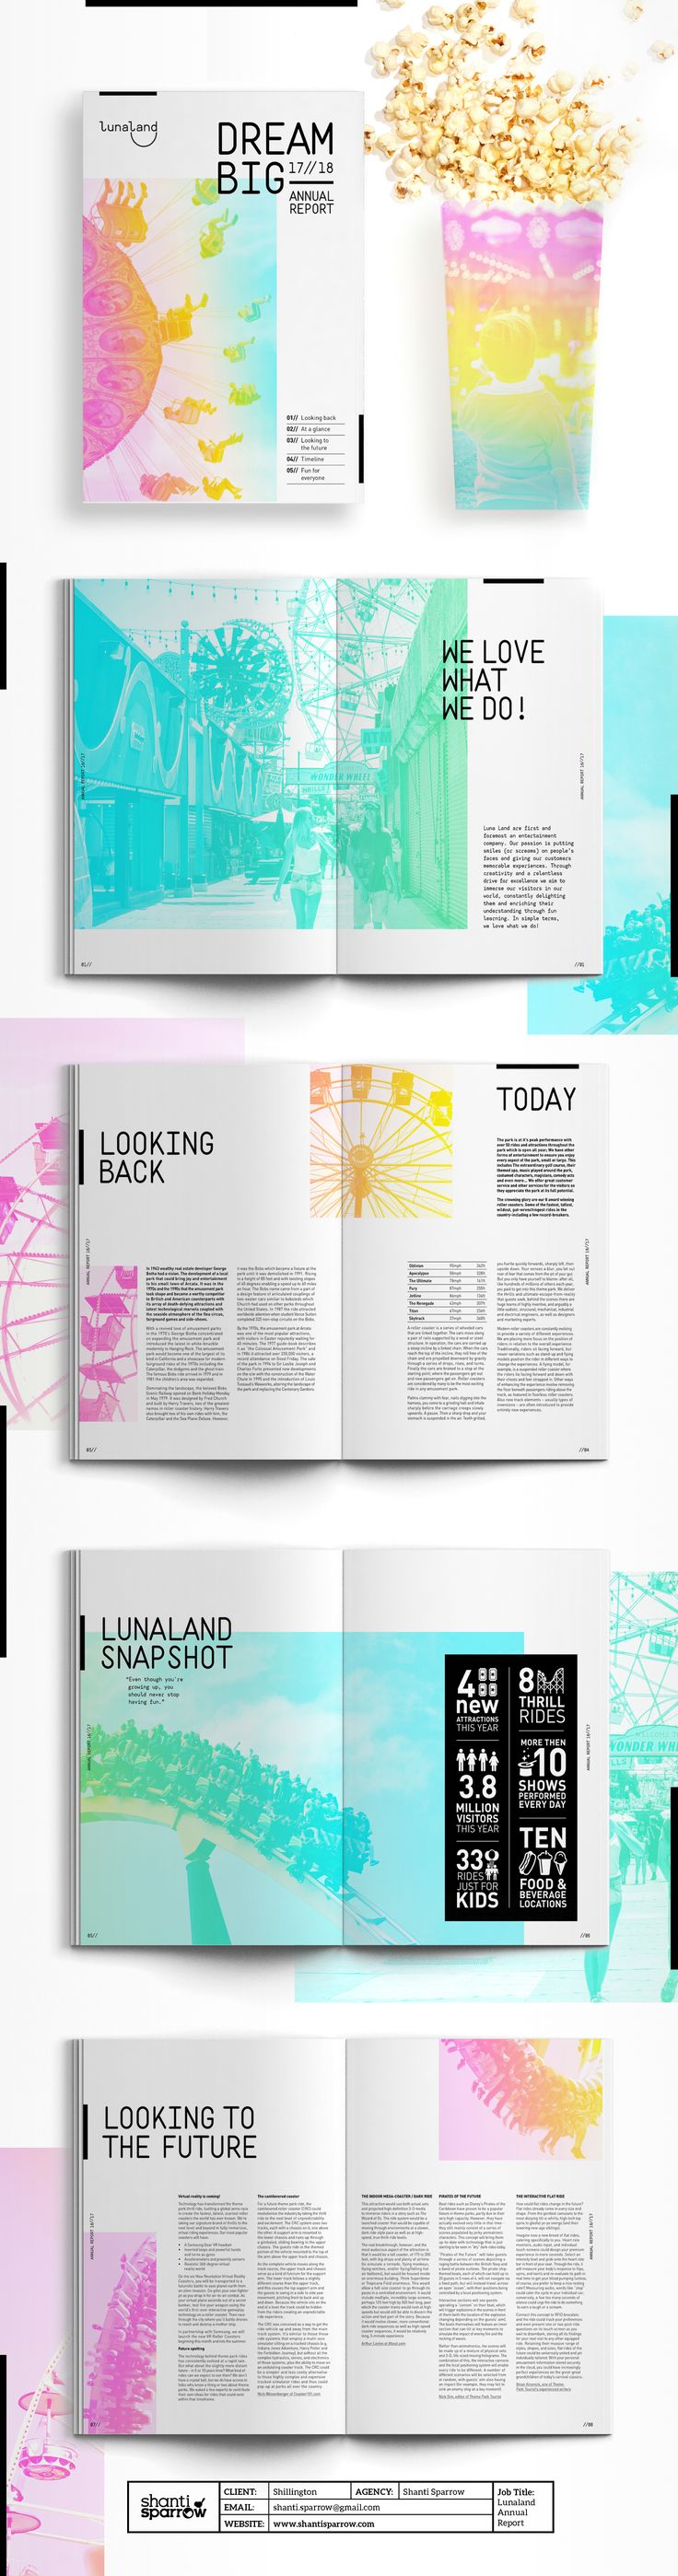 """Check out this @Behance project: """"Lunaland Annual Report"""" https://www.behance.net/gallery/47758333/Lunaland-Annual-Report"""